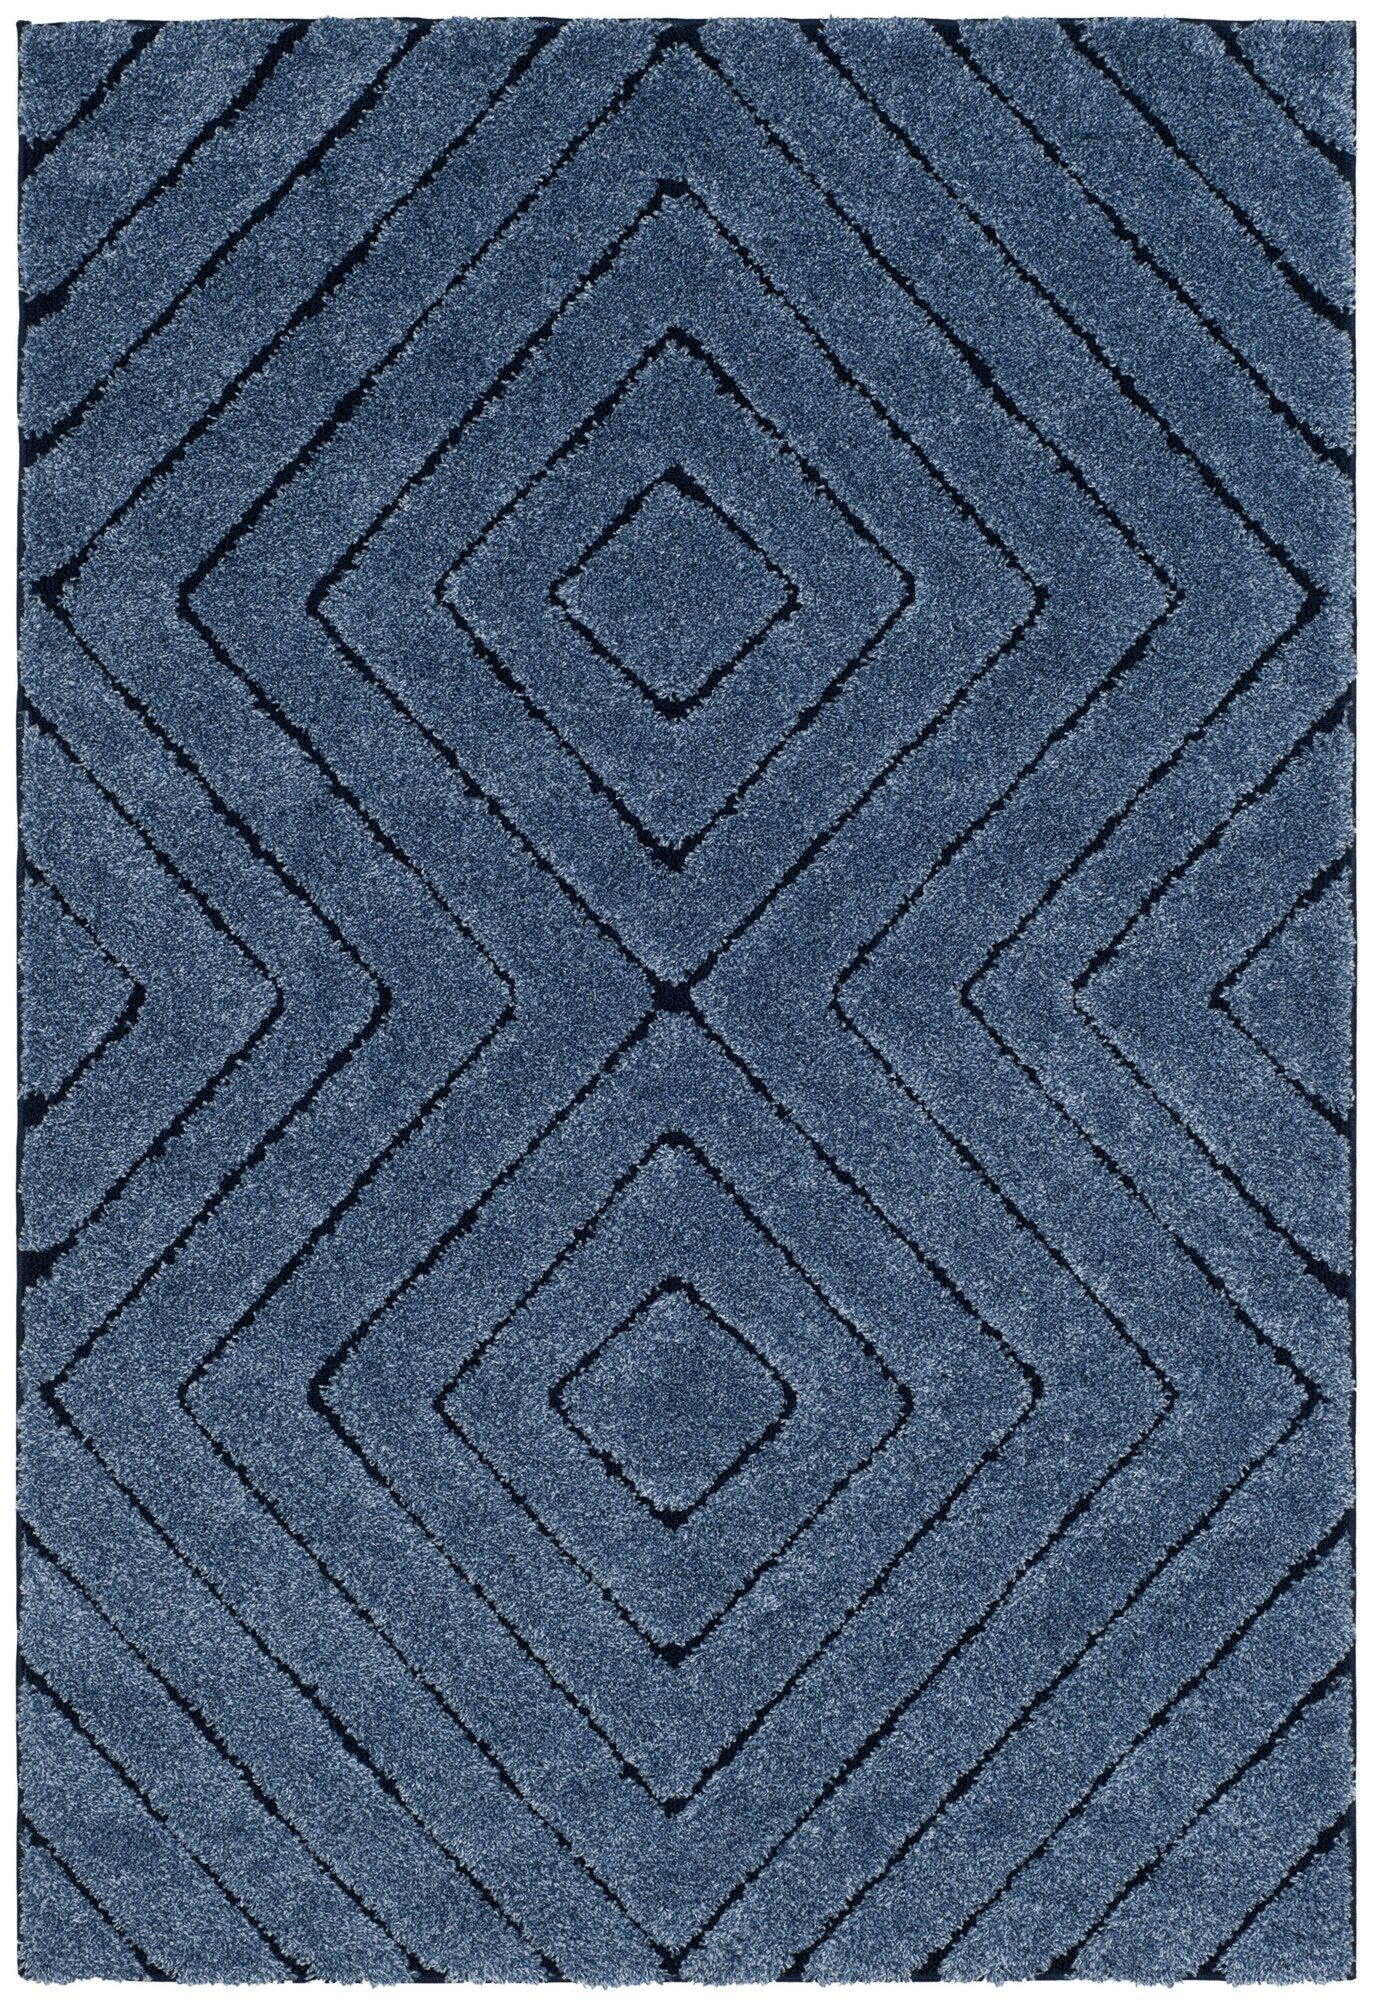 Wideman Navy Area Rug Rug Size: Rectangle 5'1